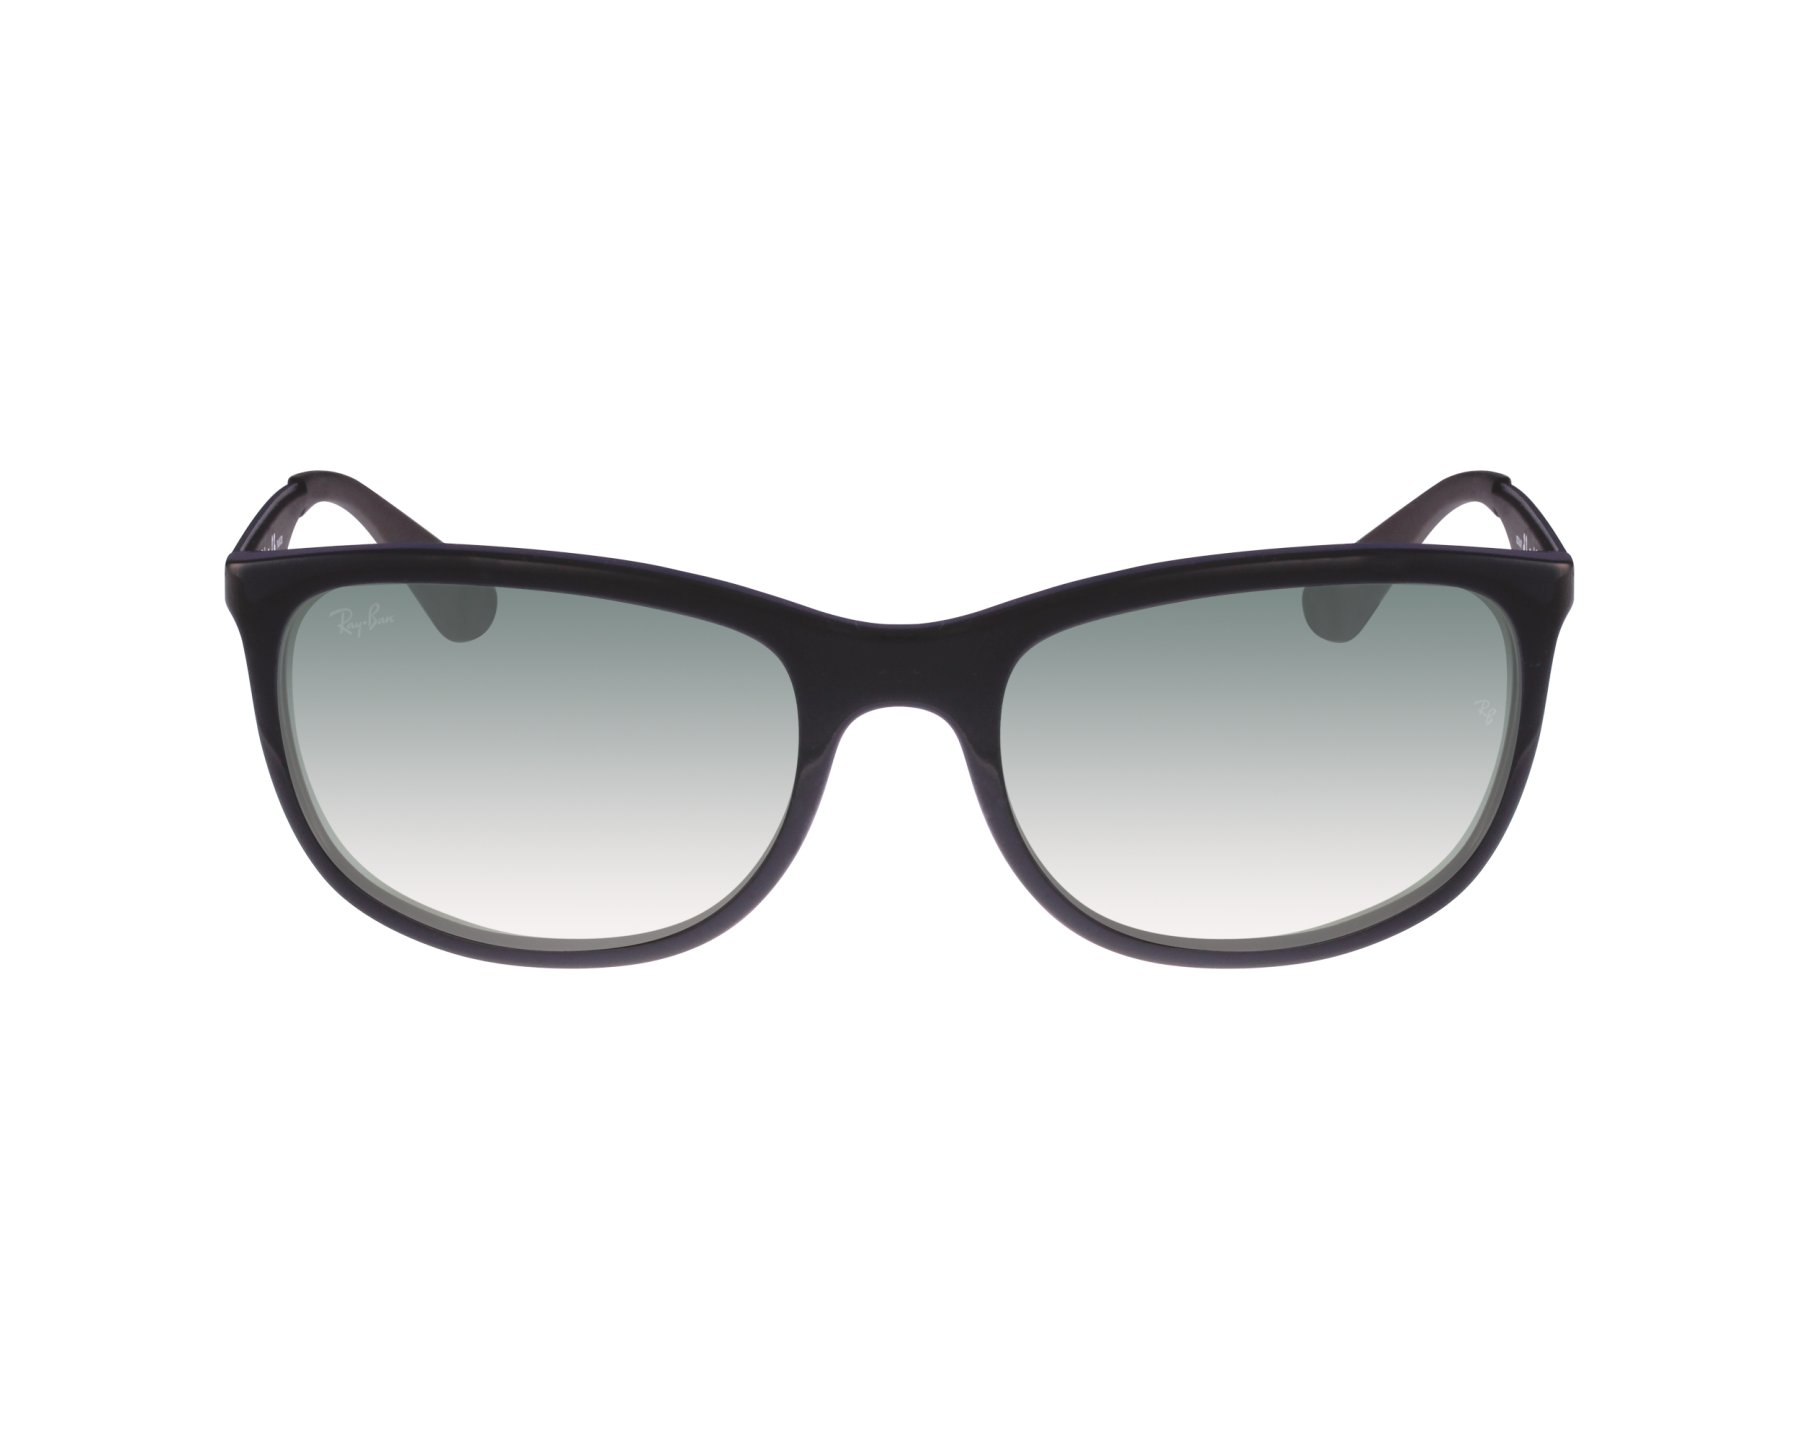 3a889d9a313 Sunglasses Ray-Ban RB-4267 601 9A 59-19 Black Black profile